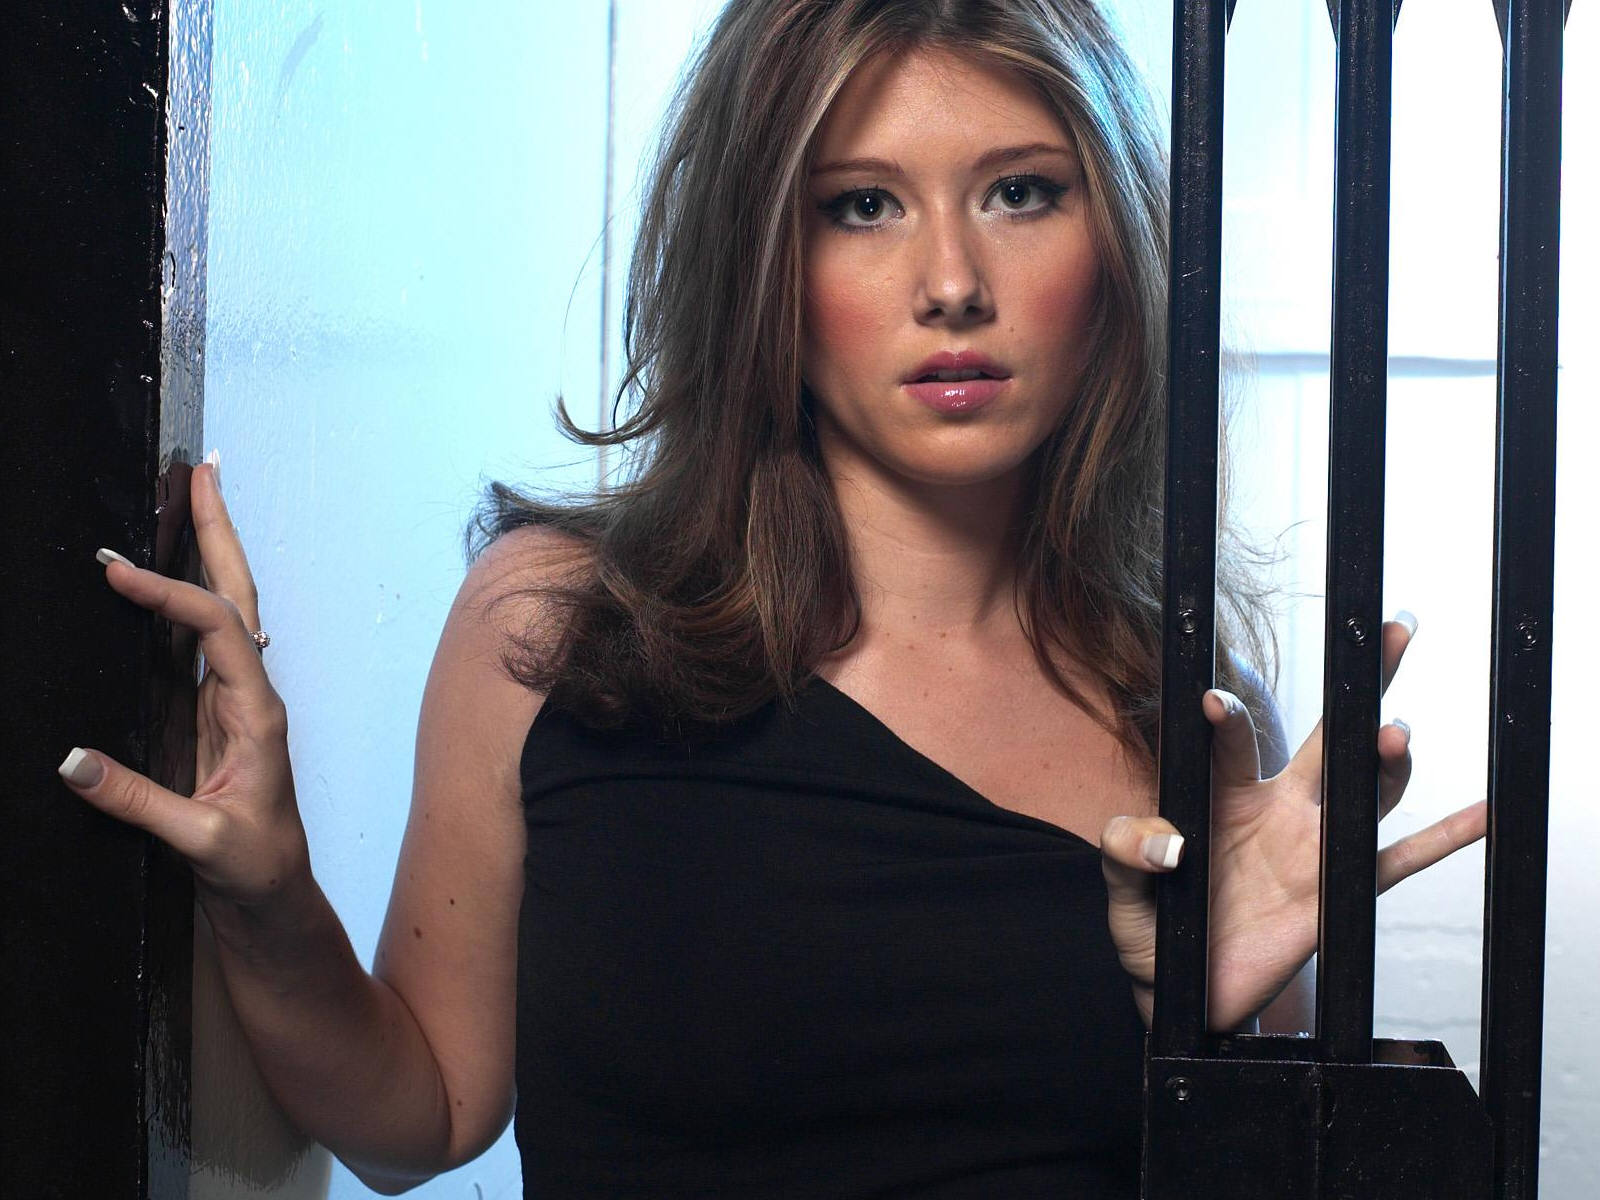 Jewel Staite Picture Image 6 Hollywood Actress Pictures Com